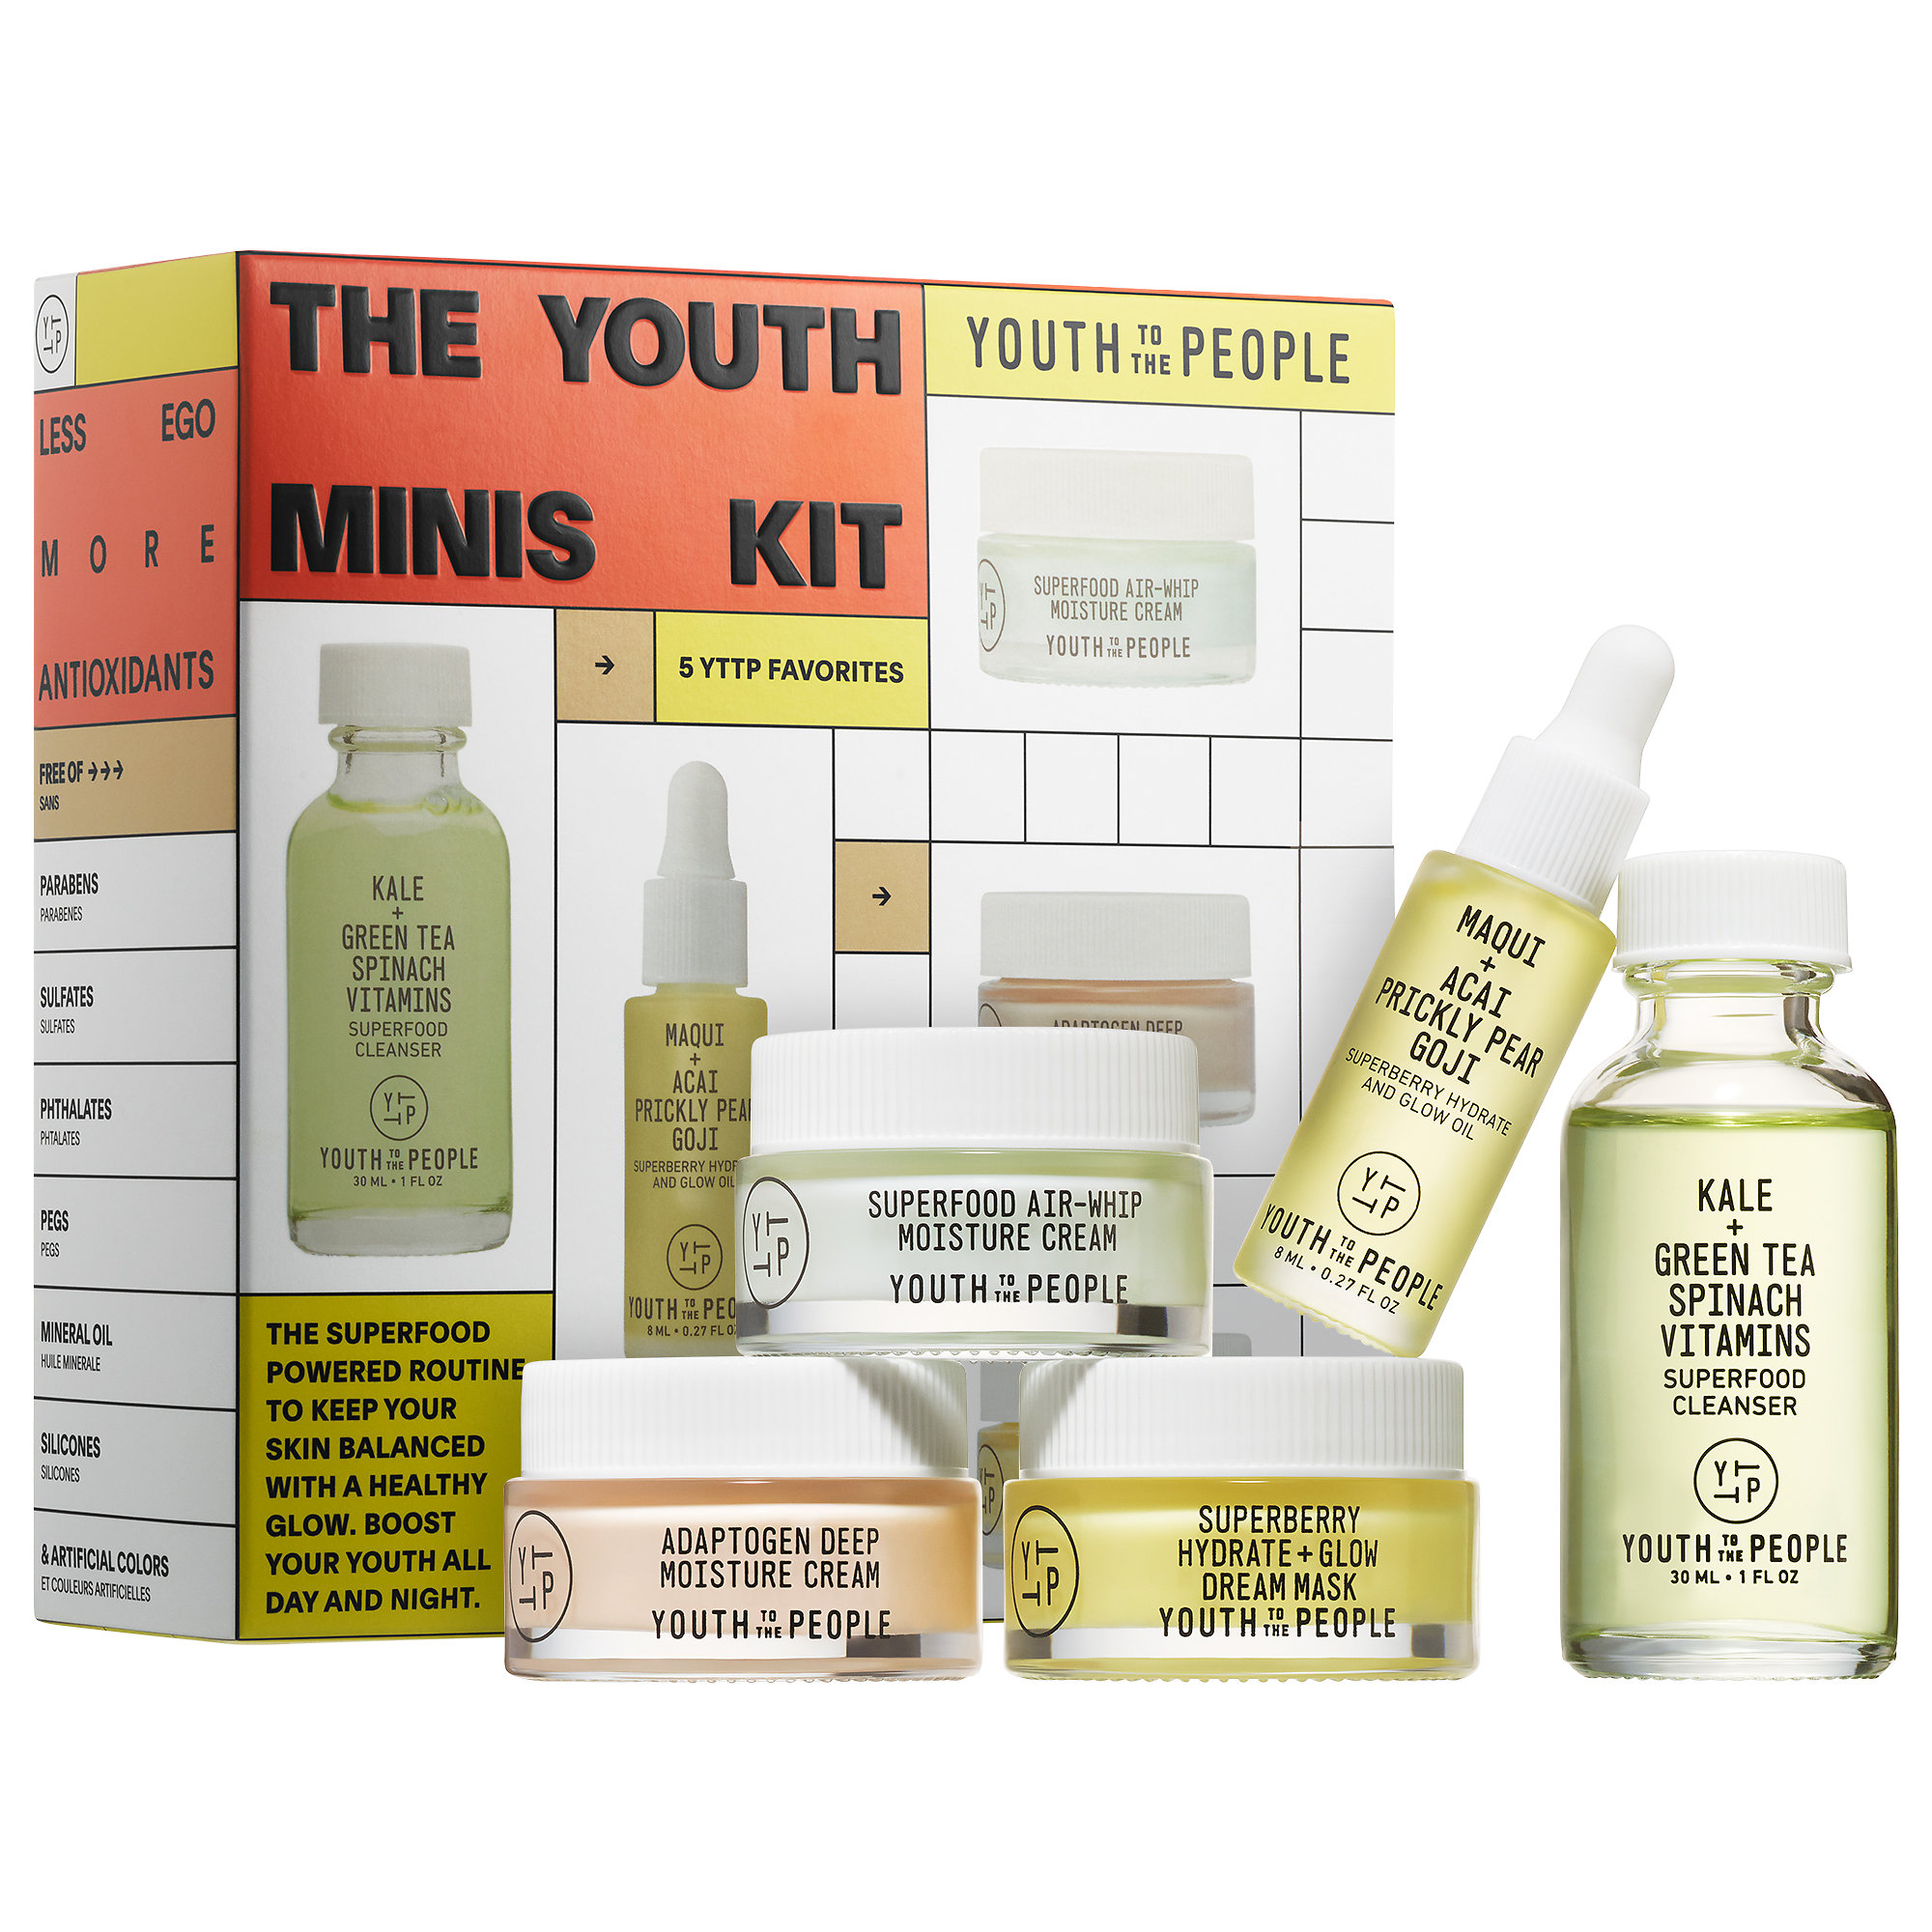 Youth to the People - The Youth Minis Kit